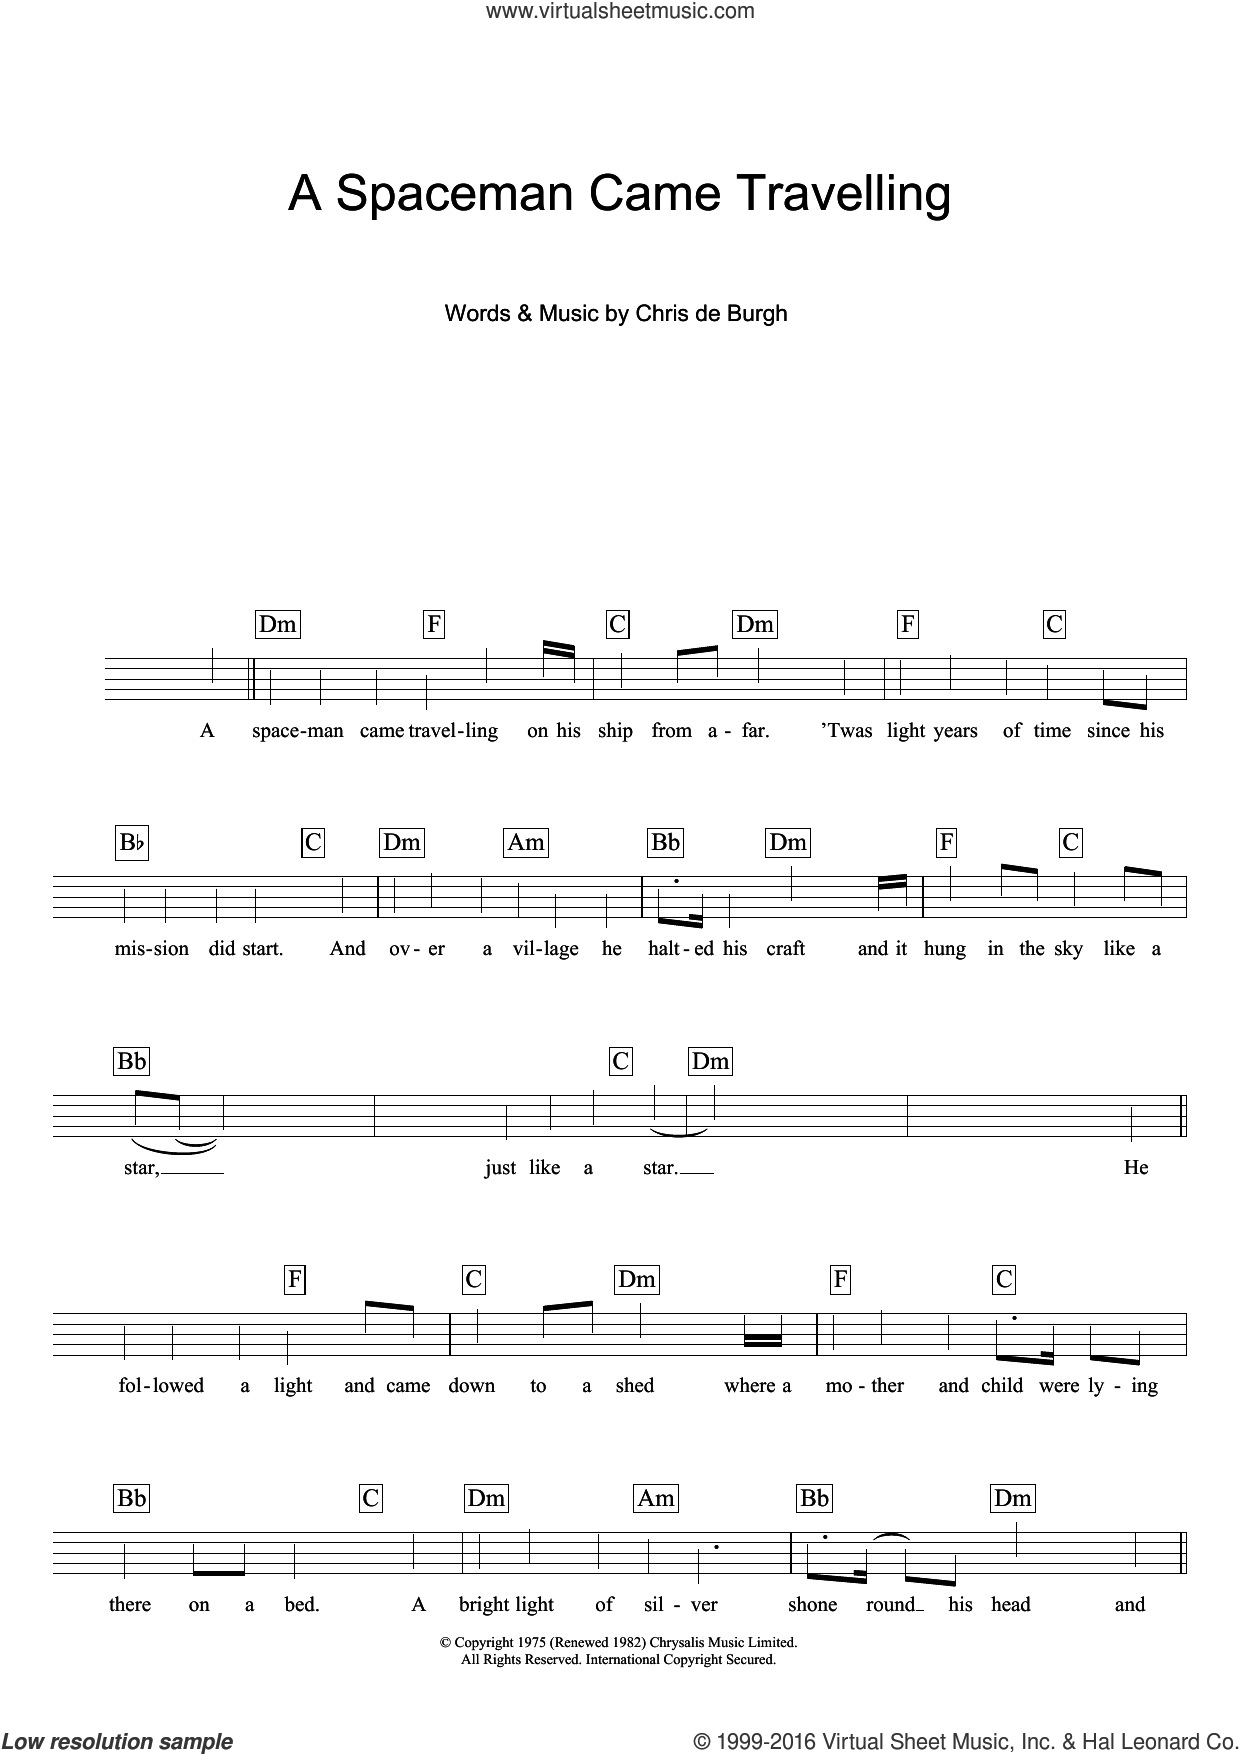 A Spaceman Came Travelling sheet music for voice and other instruments (fake book) by Chris de Burgh, intermediate skill level